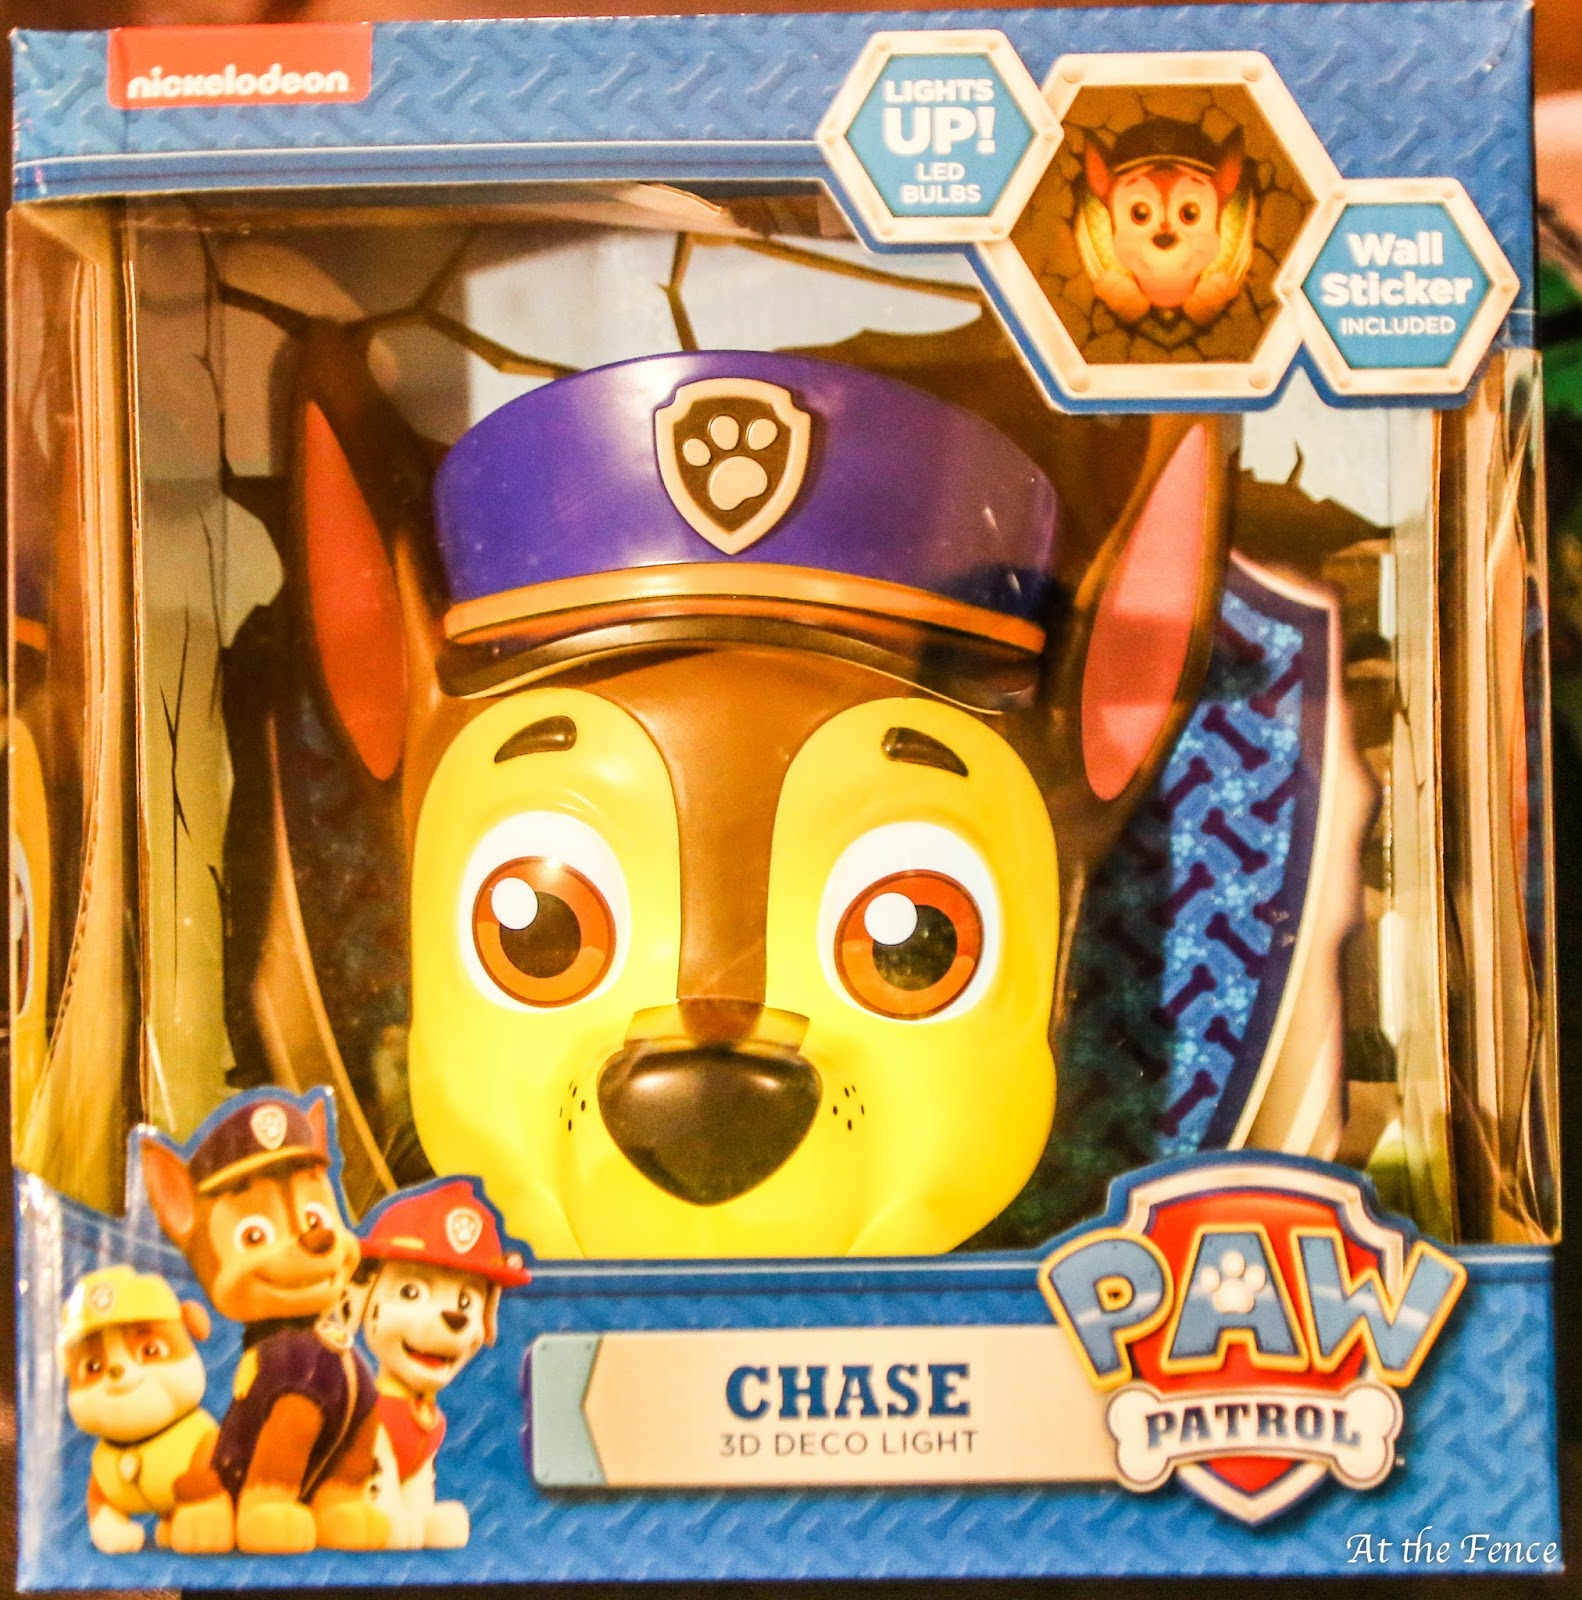 Bathroom Light Goes Off Itself at the fence: paw patrol 3d deco light #2016holidaygiftguide